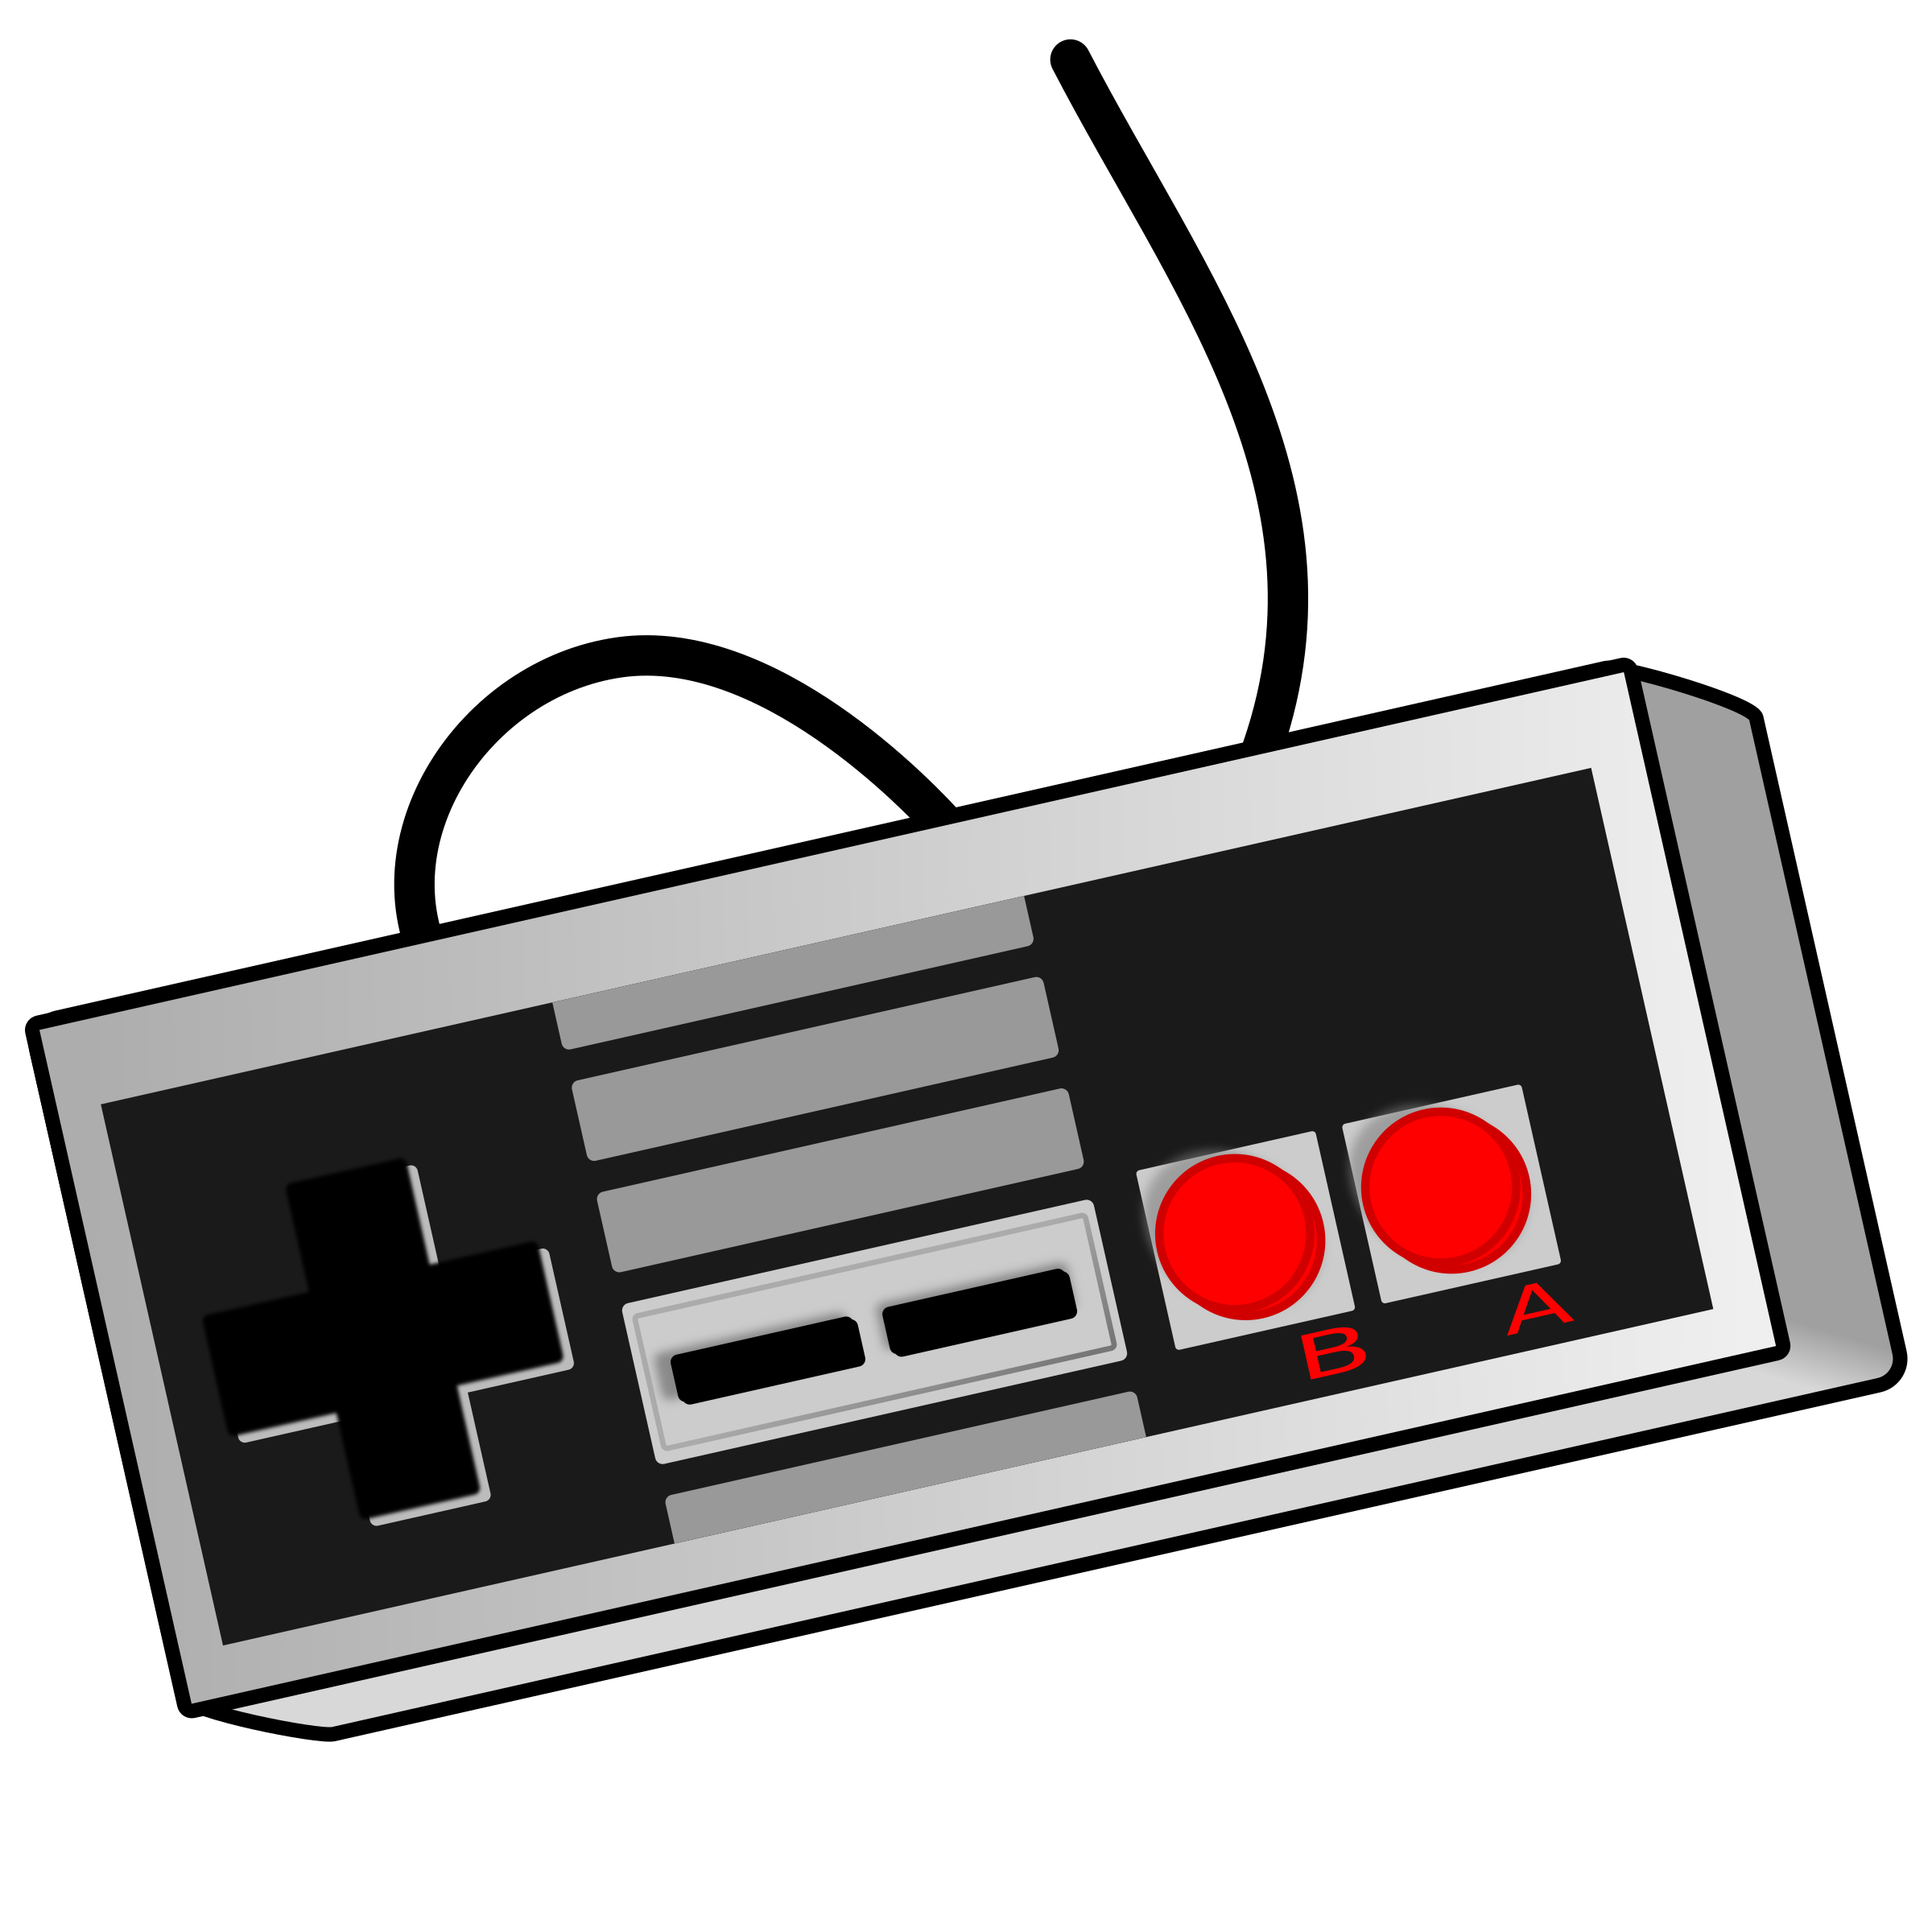 image black and white library Arcade clipart clip art. Old school game controller